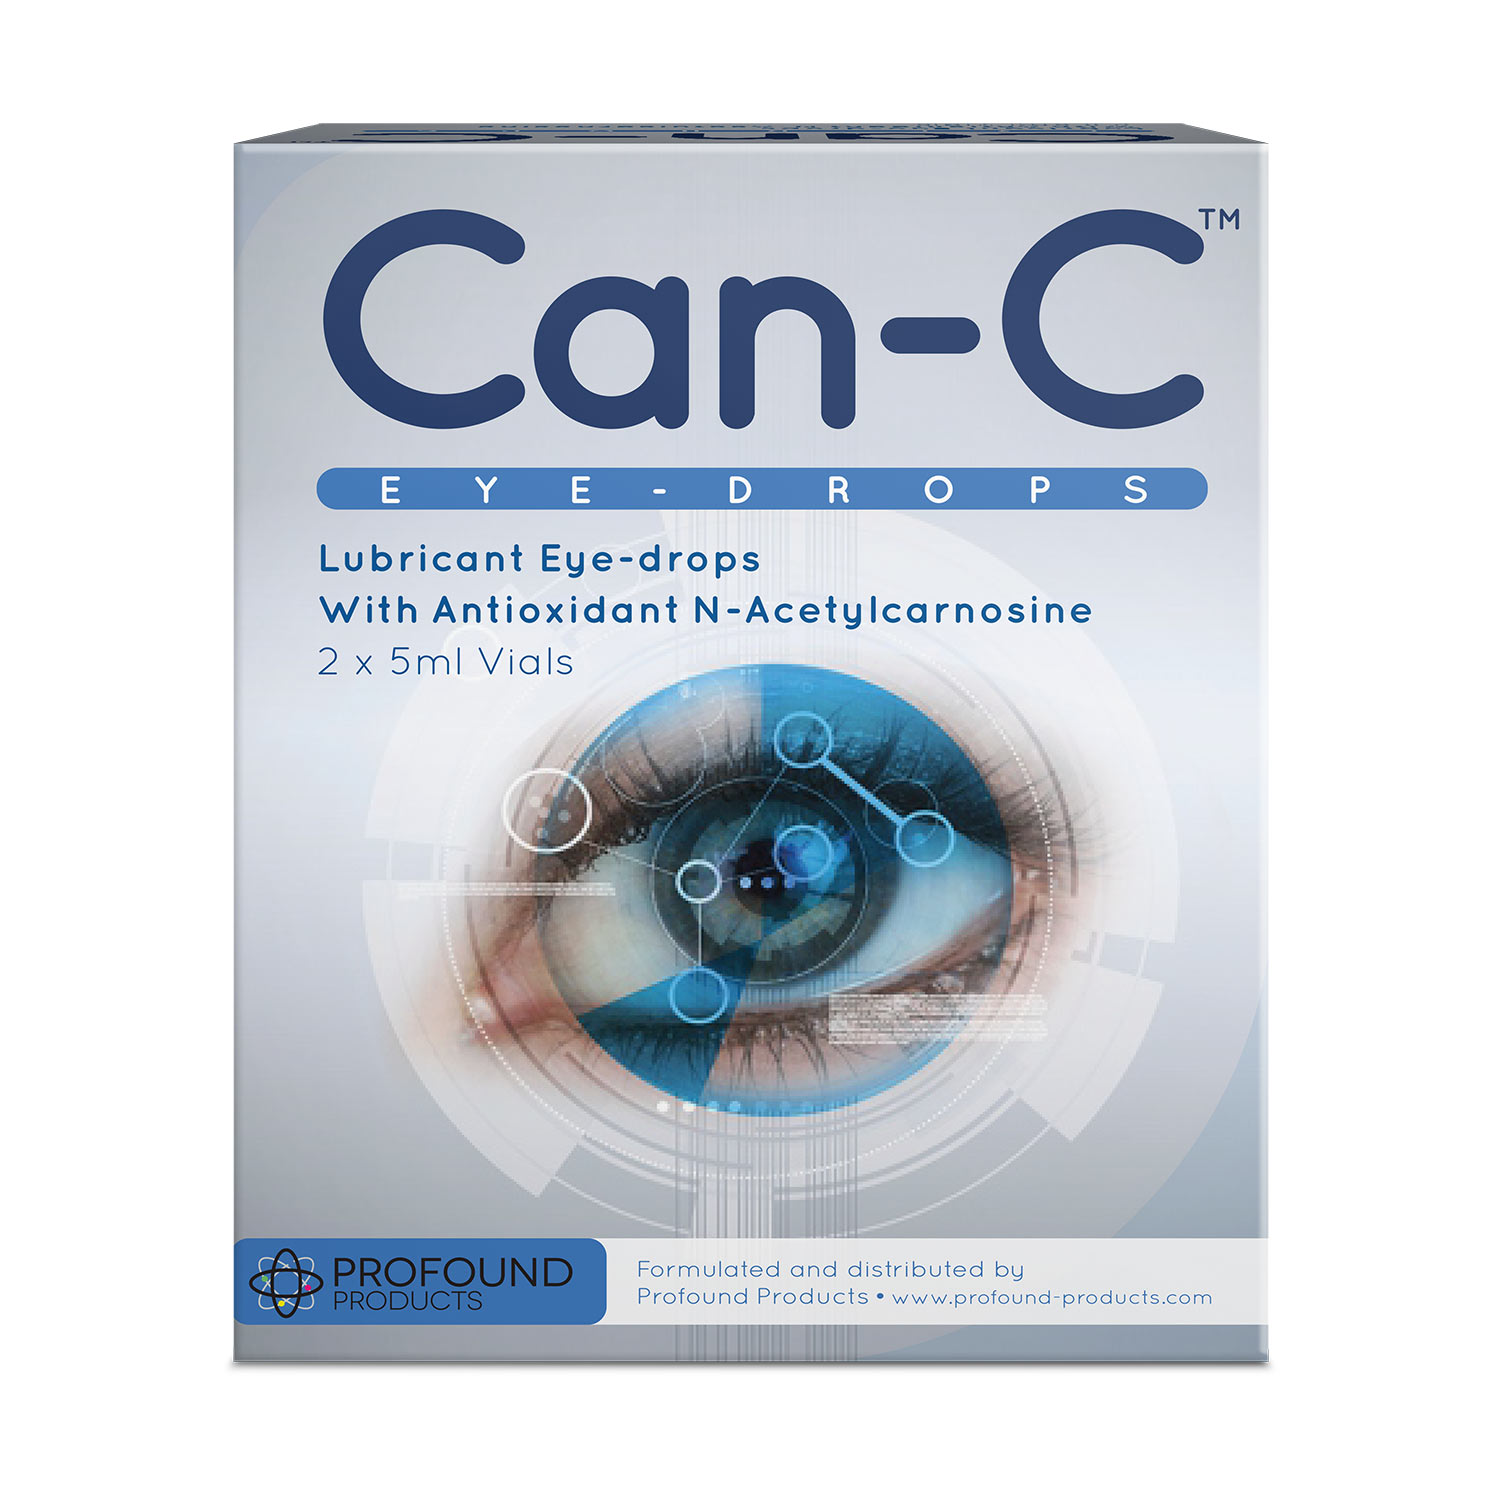 Can-C Lubricant Eye-Drops product packaging in light grey and blue